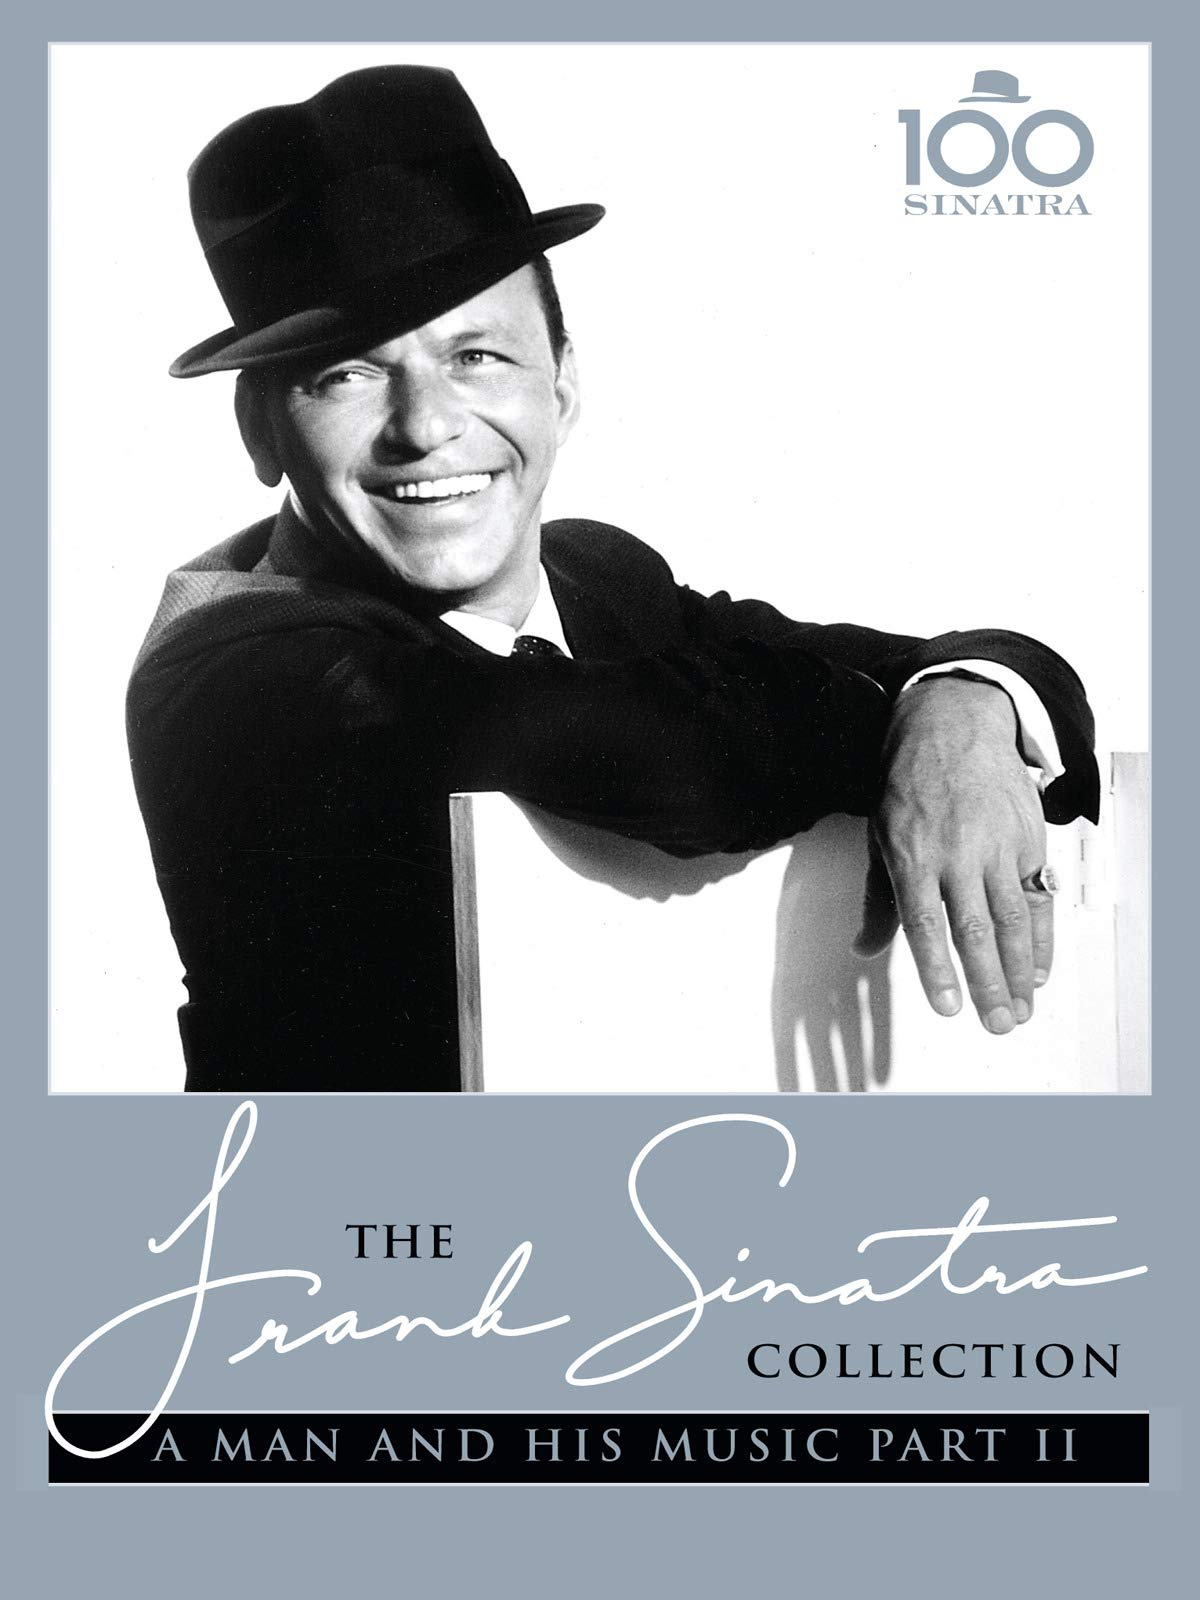 Frank Sinatra - A Man And His Music Part II